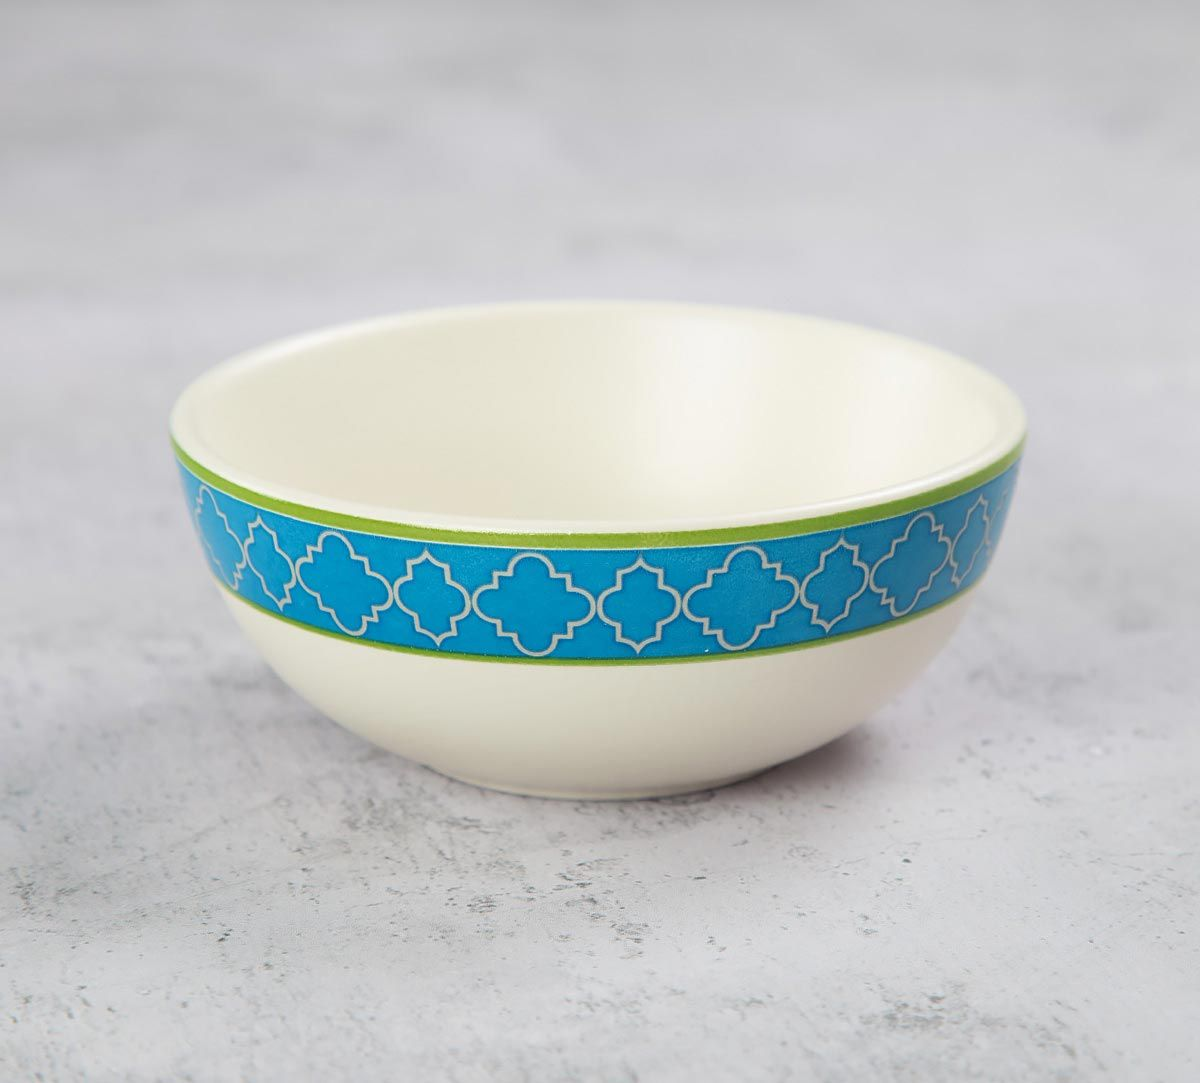 Buy Katori Bowls online in India on India Circus